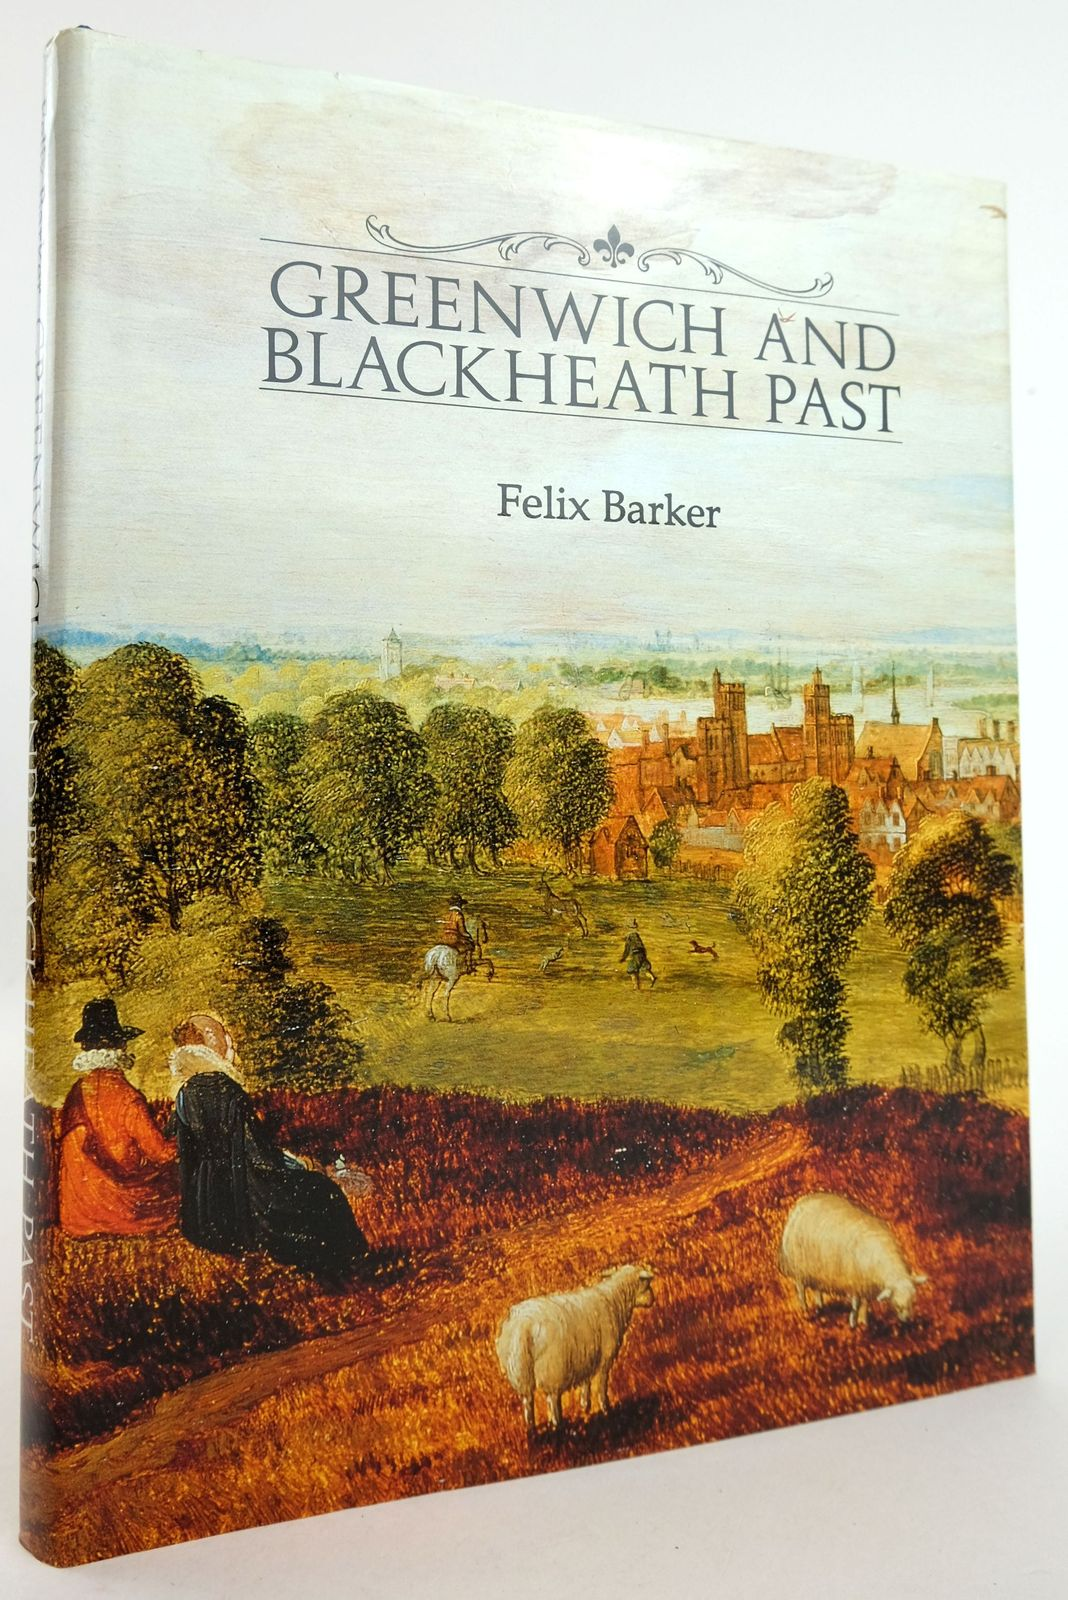 Photo of GREENWICH & BLACKHEATH PAST written by Barker, Felix published by Historical Publications Ltd. (STOCK CODE: 1819535)  for sale by Stella & Rose's Books